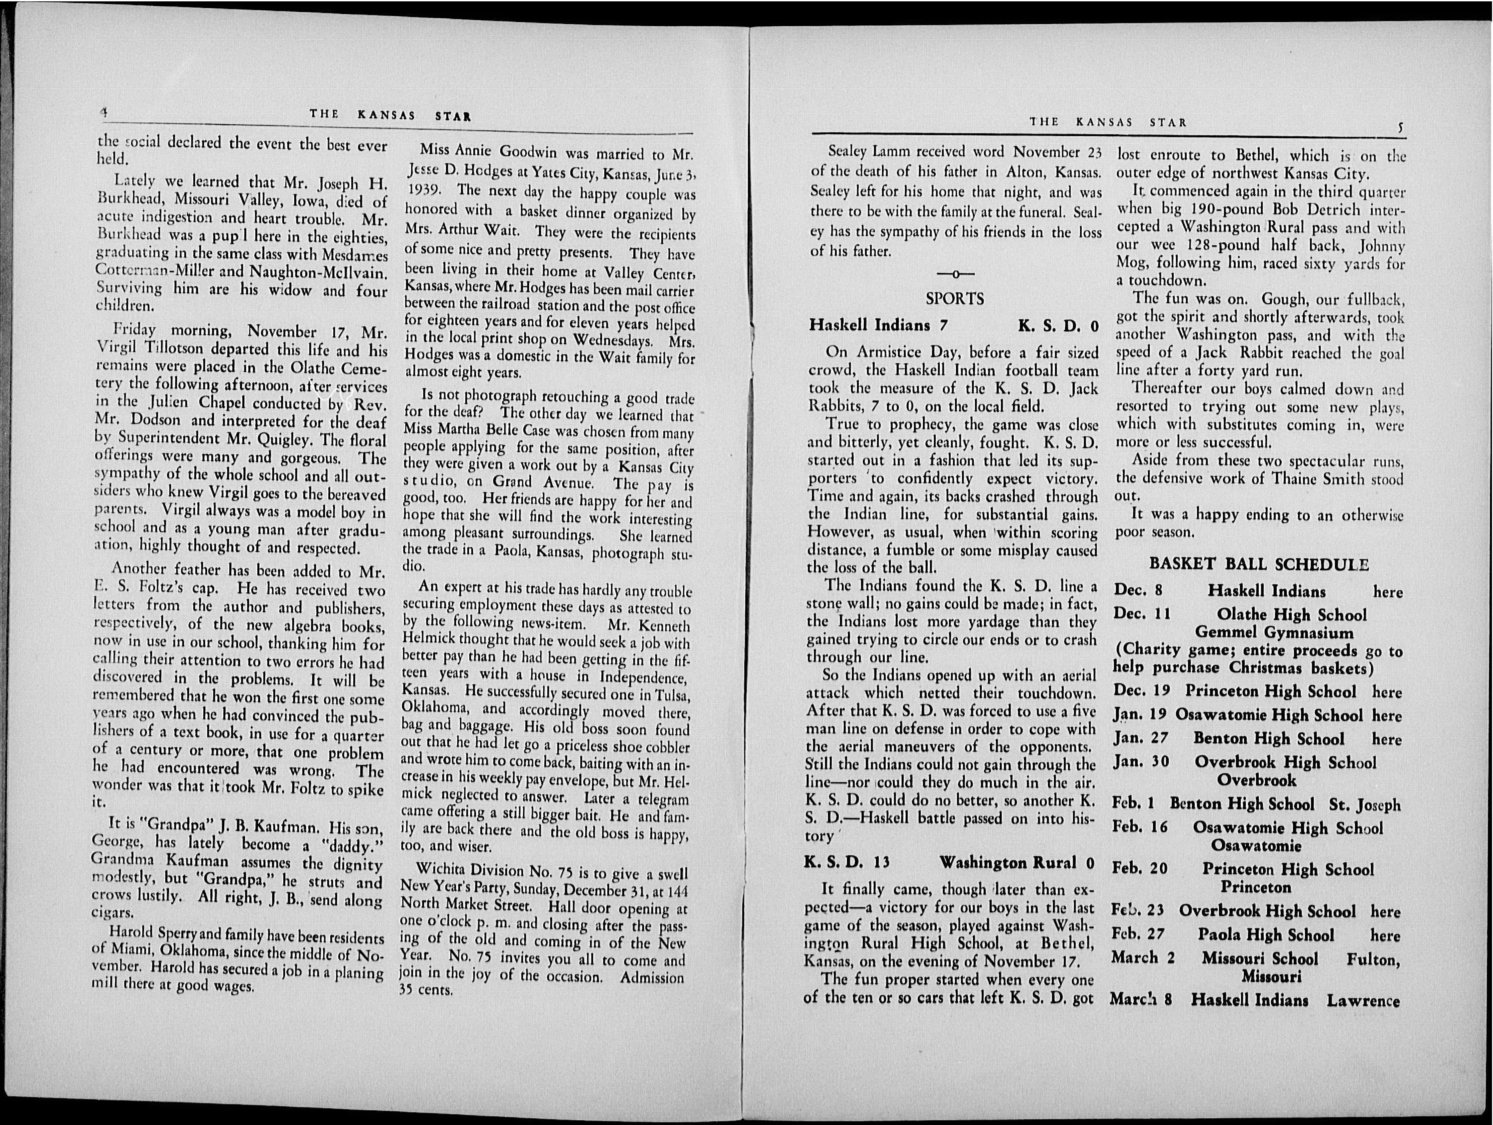 The Kansas Star, volume 54, number 4 - 4-5